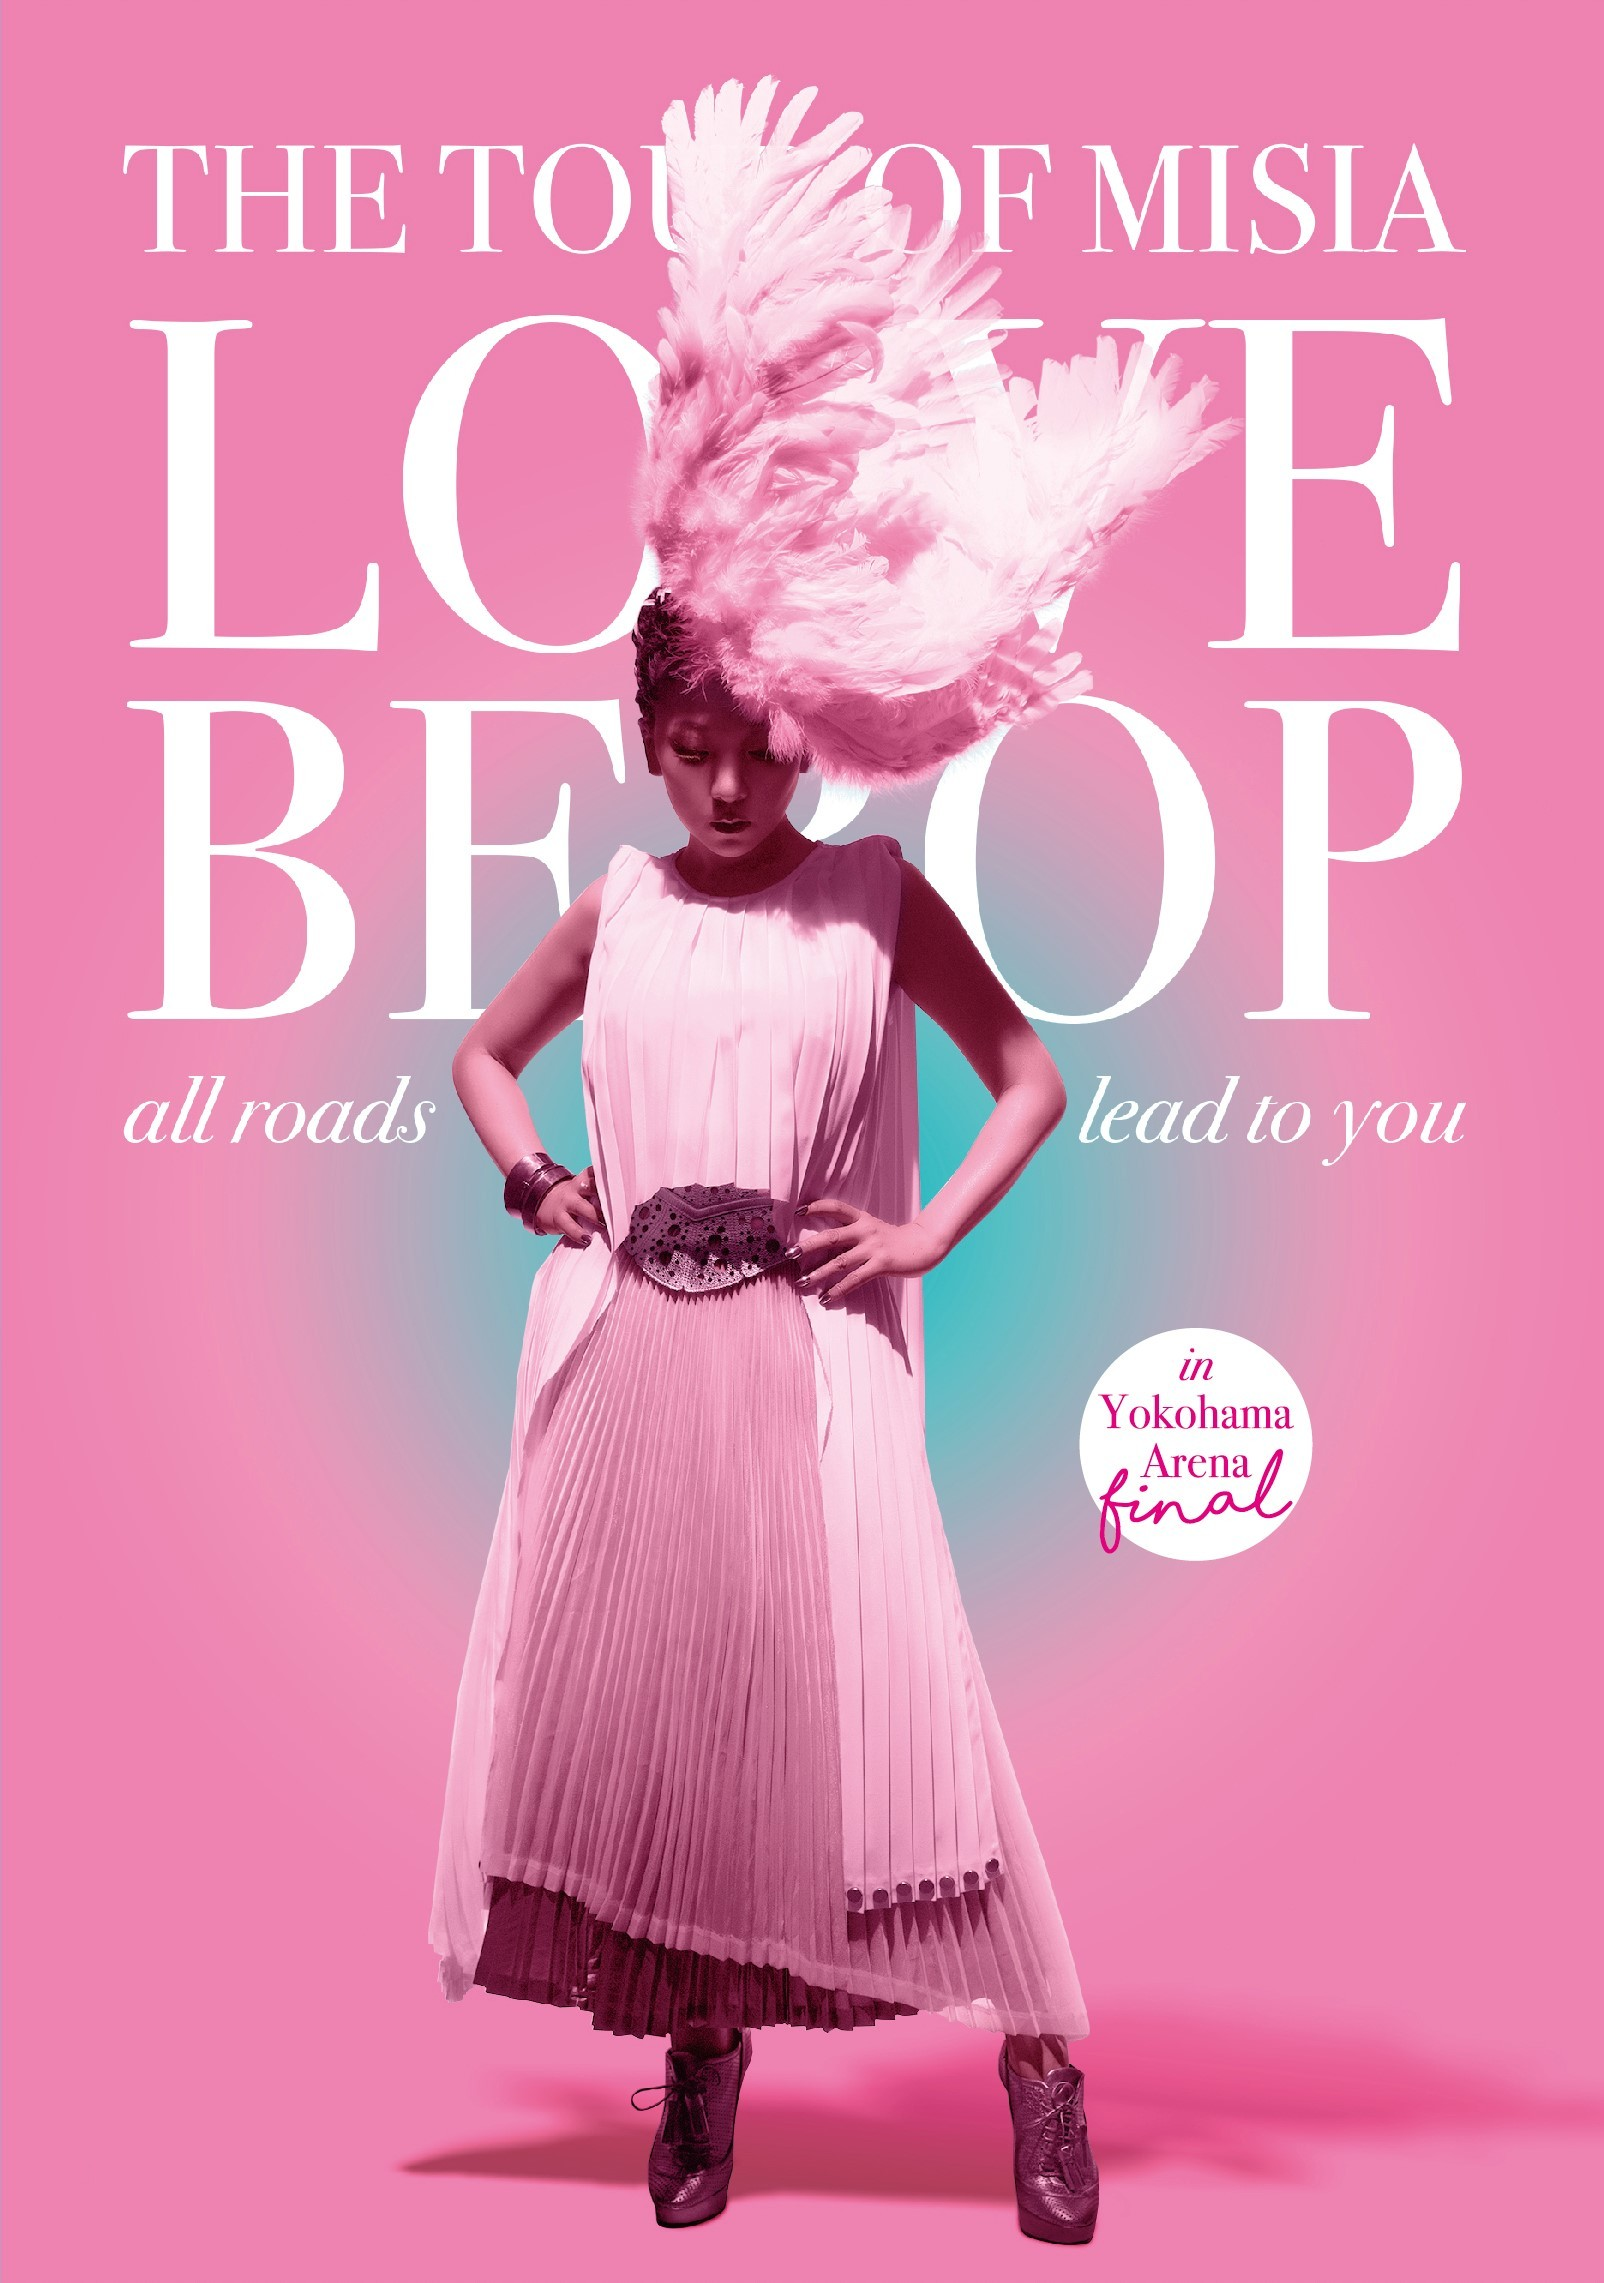 『THE TOUR OF MISIA LOVE BEBOP all roads lead to you in YOKOHAMA ARENA Final』初回盤